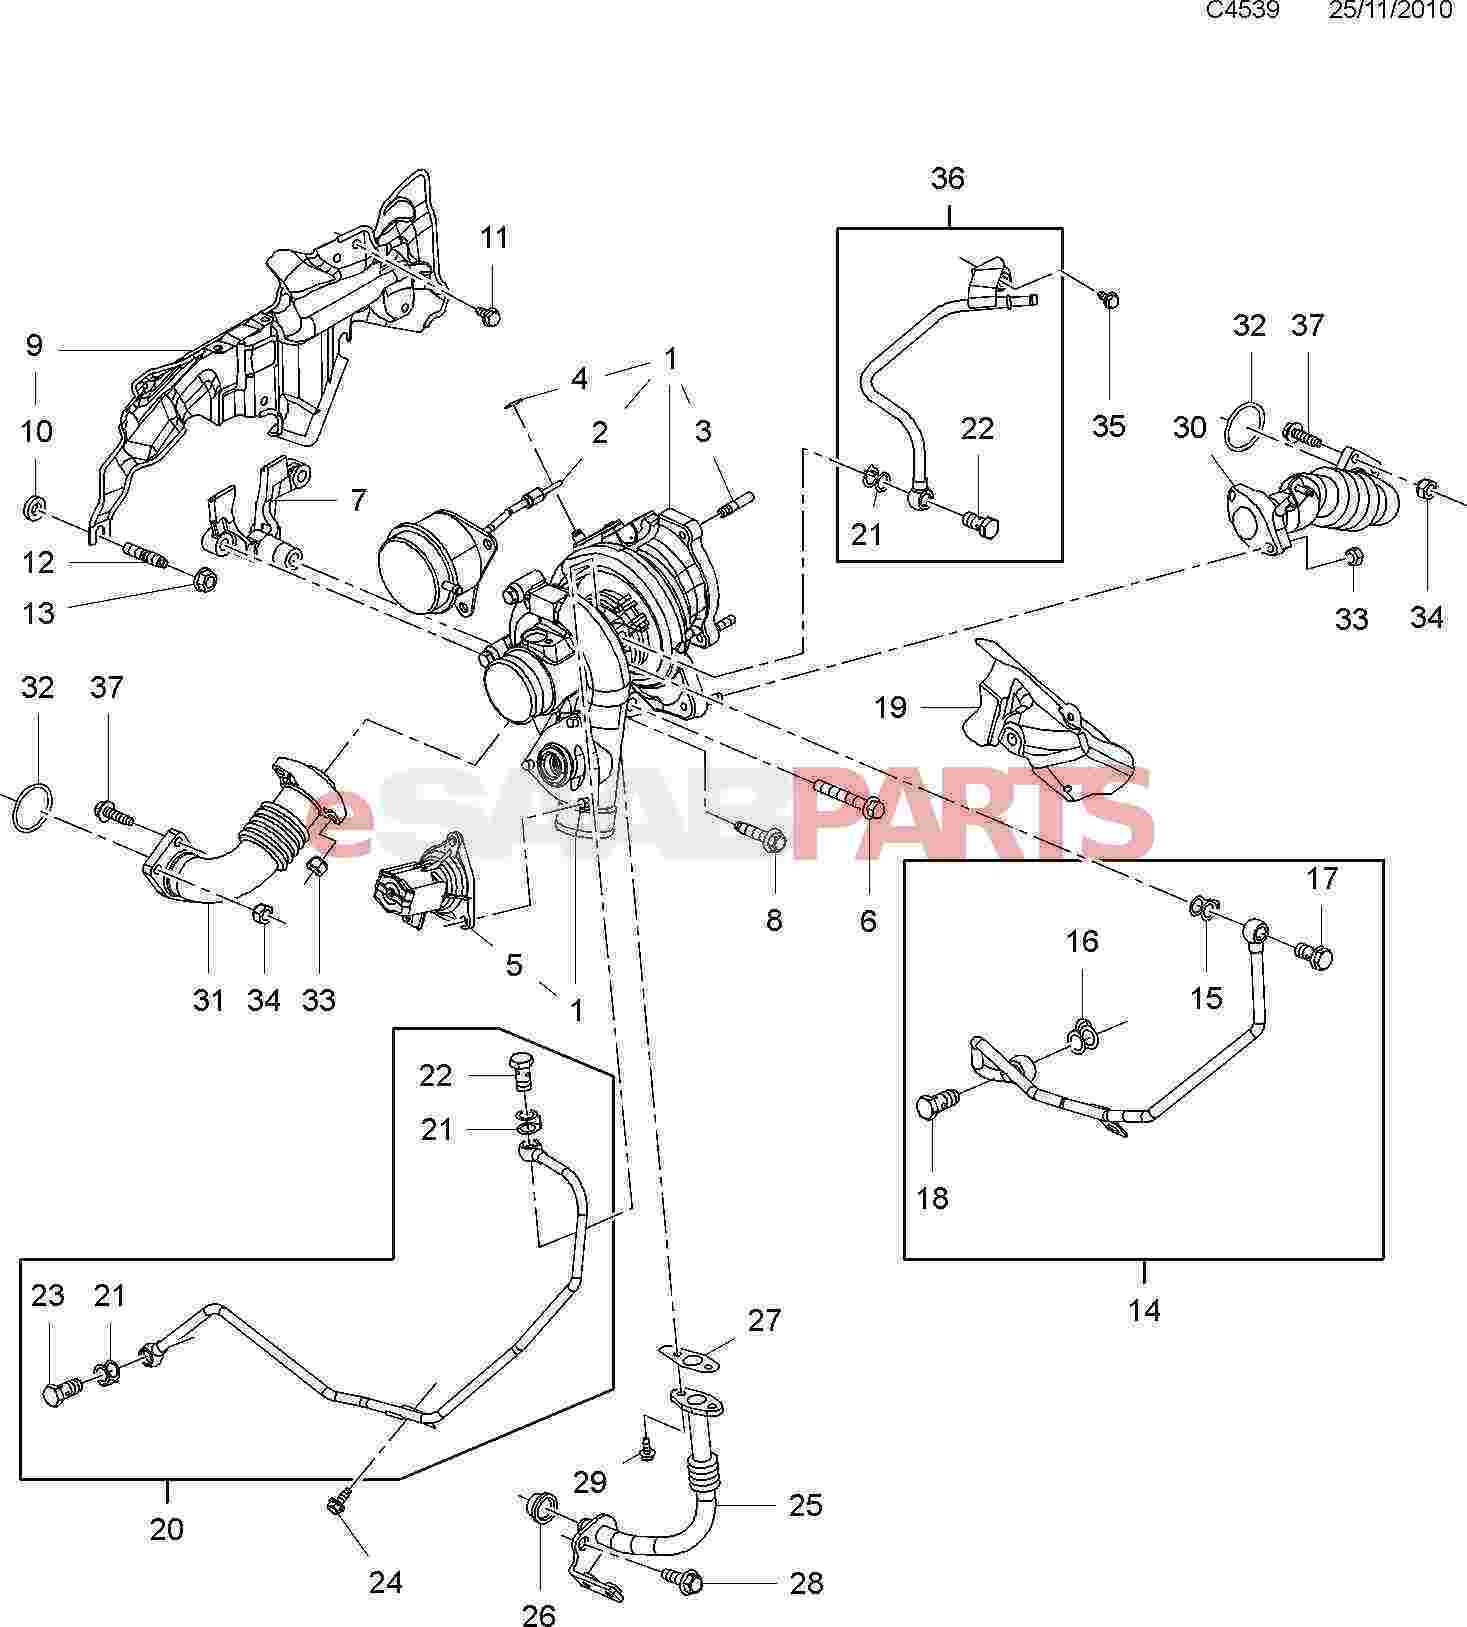 Saab 9 5 Parts Diagram. Saab. Auto Parts Catalog And Diagram